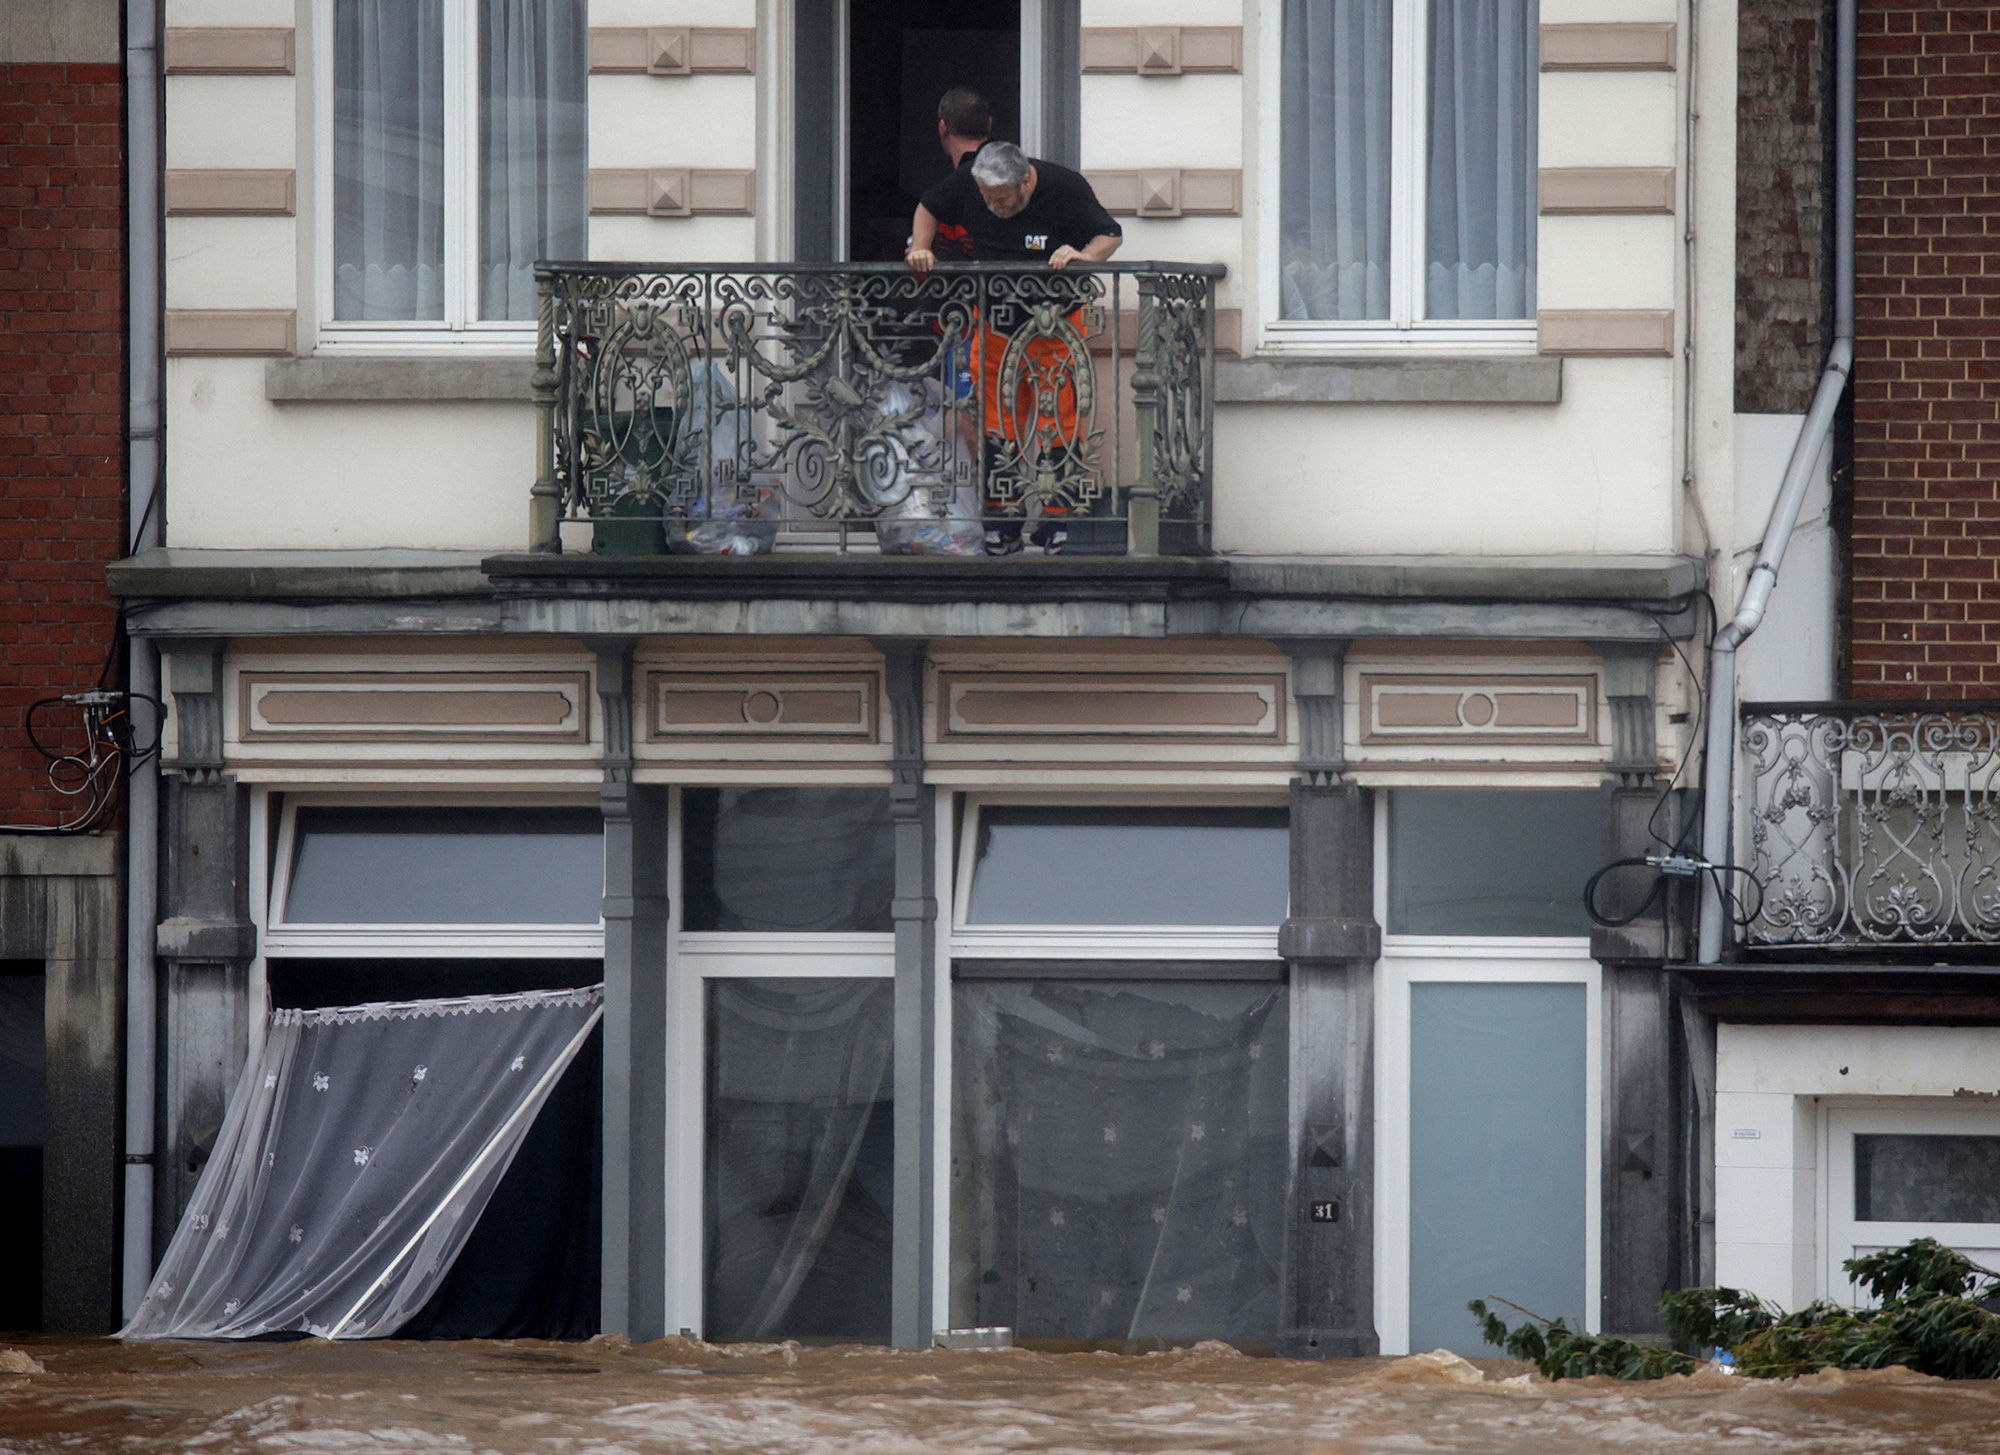 Rescue workers look down from a balcony as floodwaters run down a main street in Pepinster, Belgium, on Thursday.